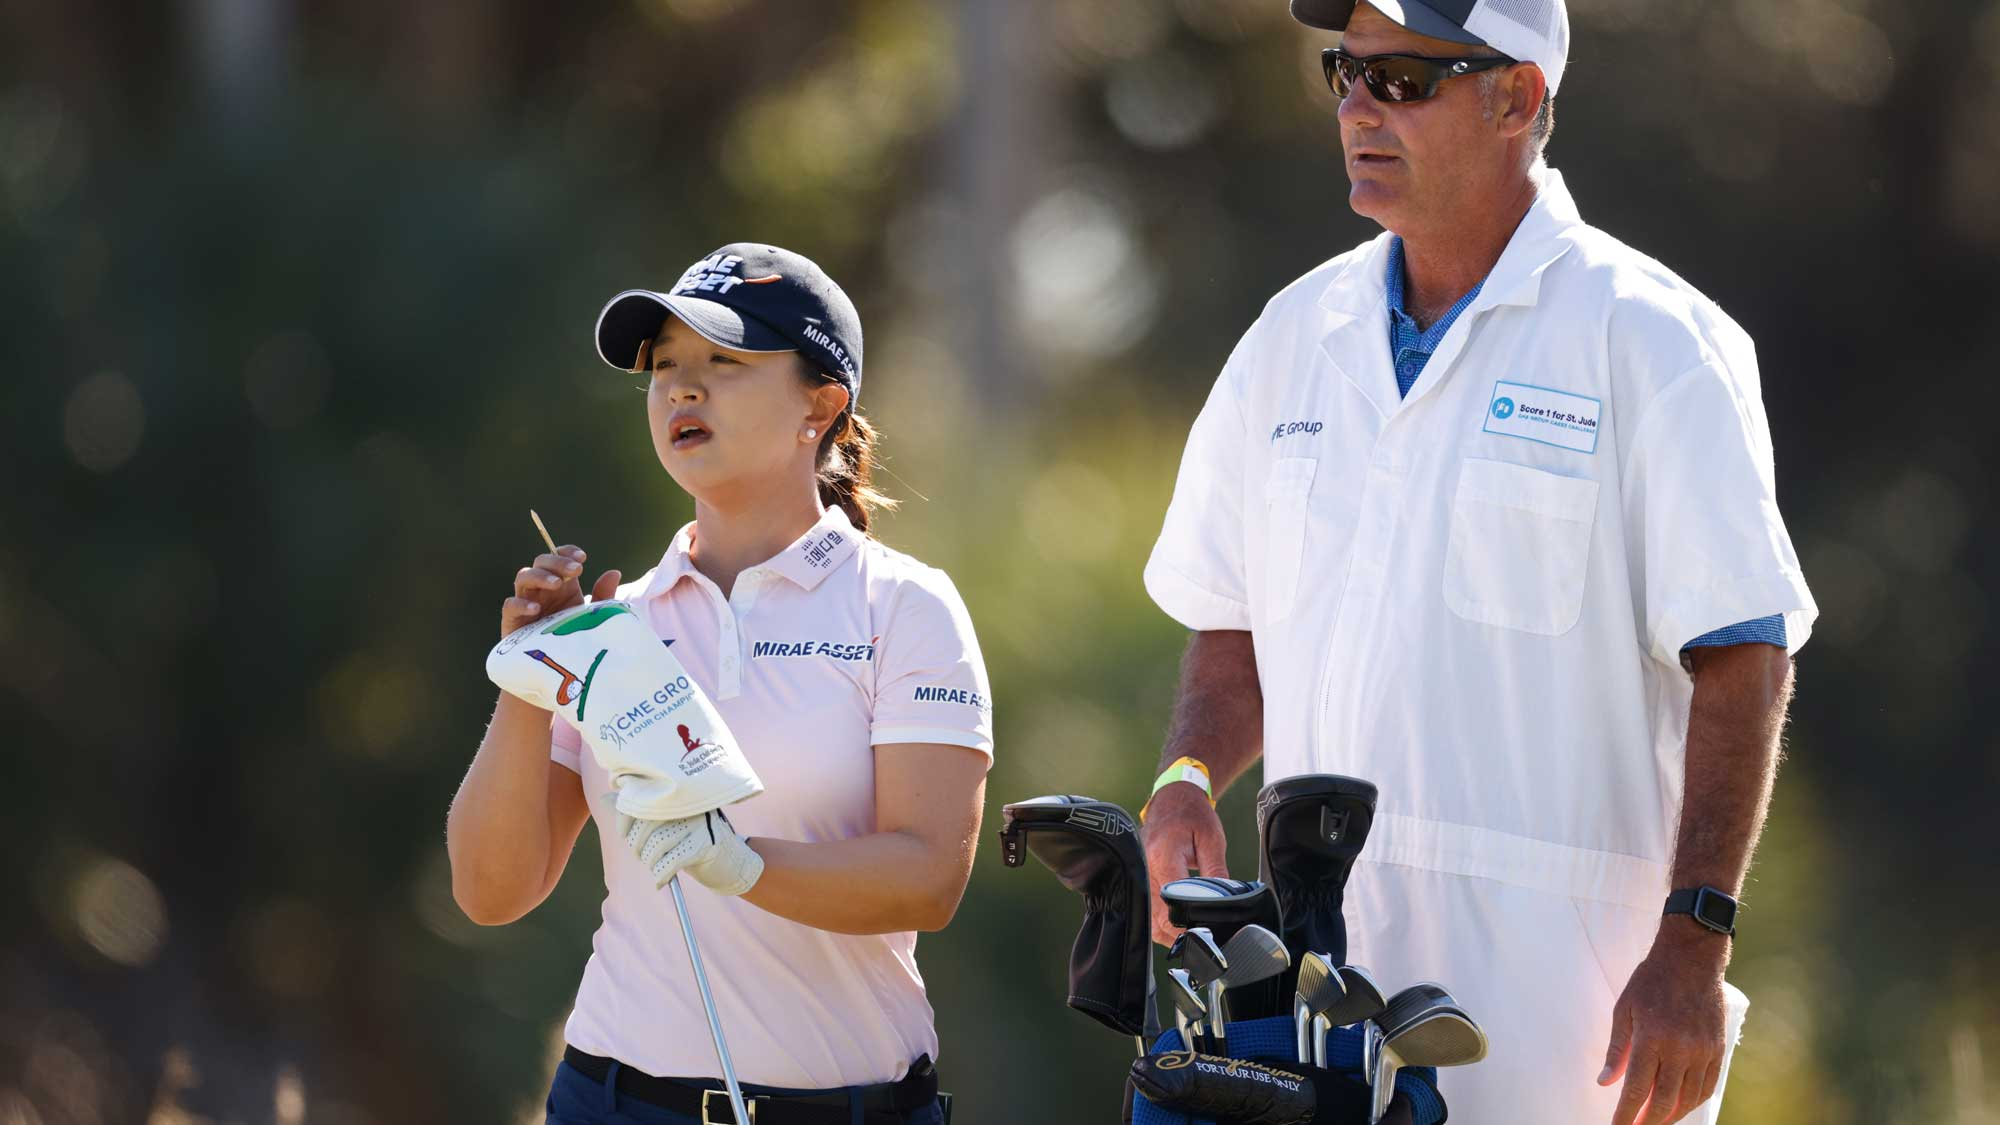 Sei-Young Kim of Korea talks with her caddie on the third hole during the third round of the CME Group Tour Championship